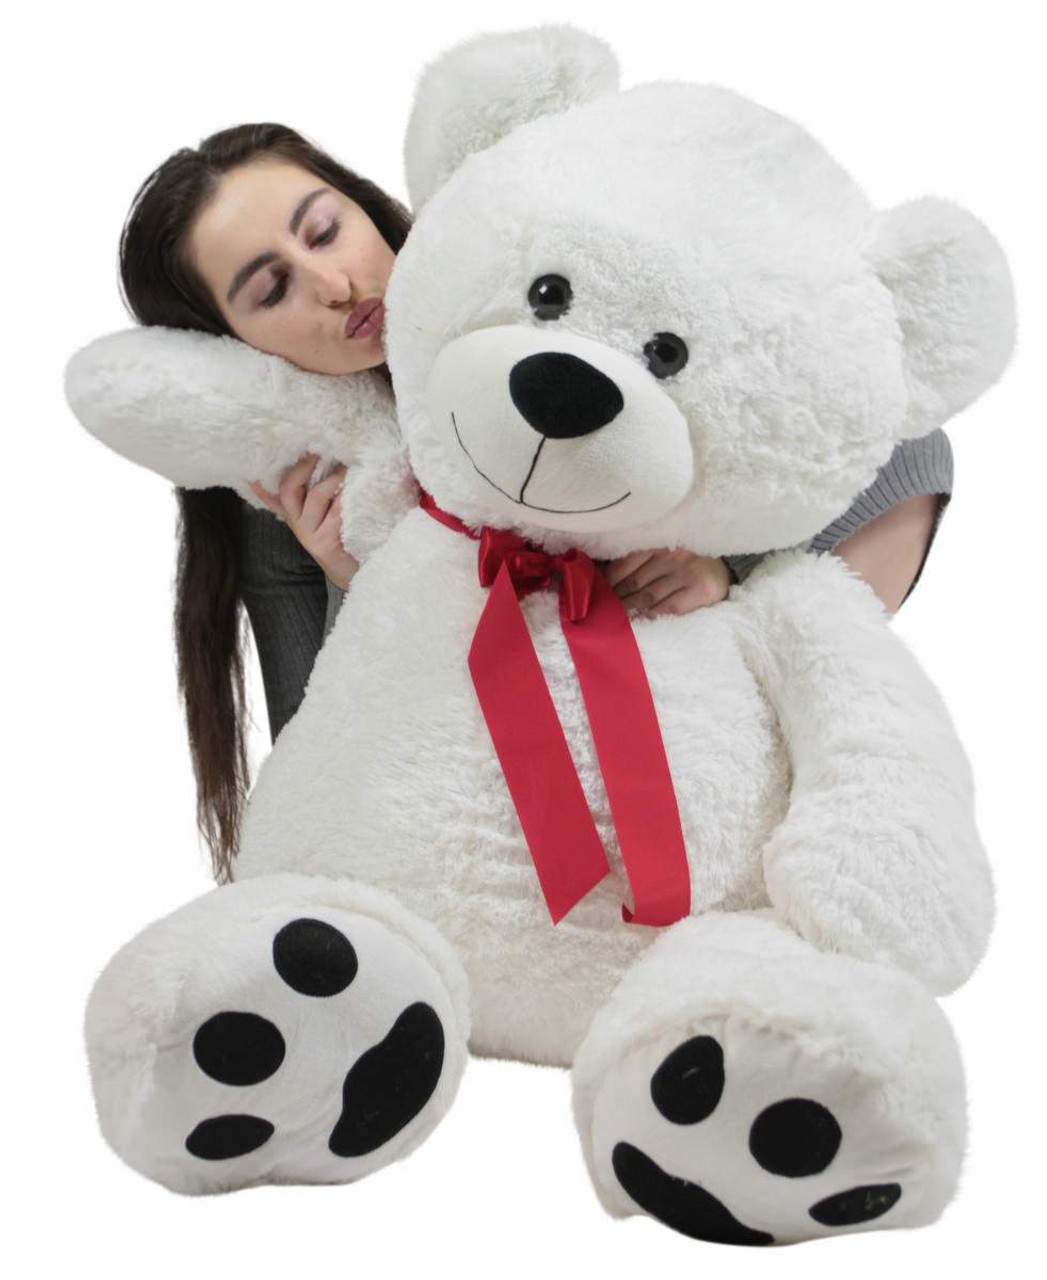 82140feb0 ... Giant Valentine s Day Teddy Bear 52 Inch White Soft